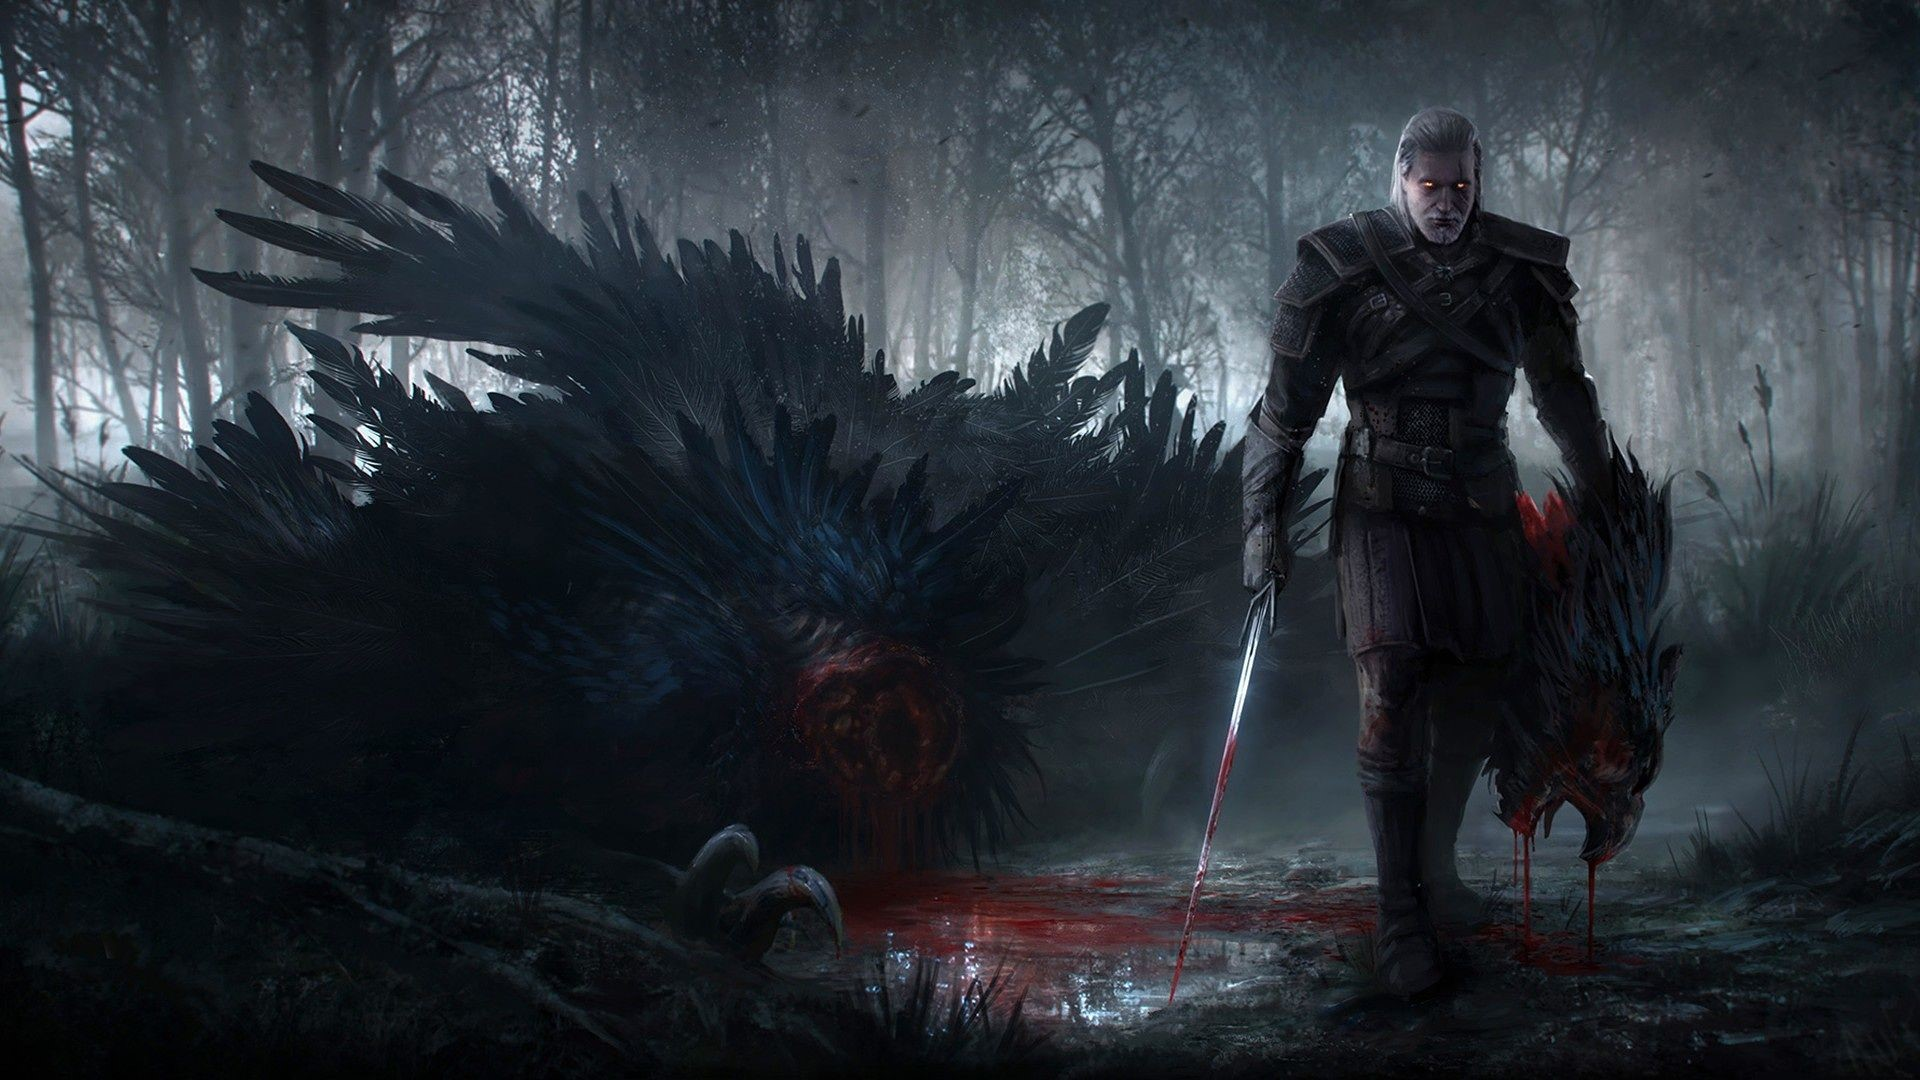 The Witcher 3 Wild Hunt Background image